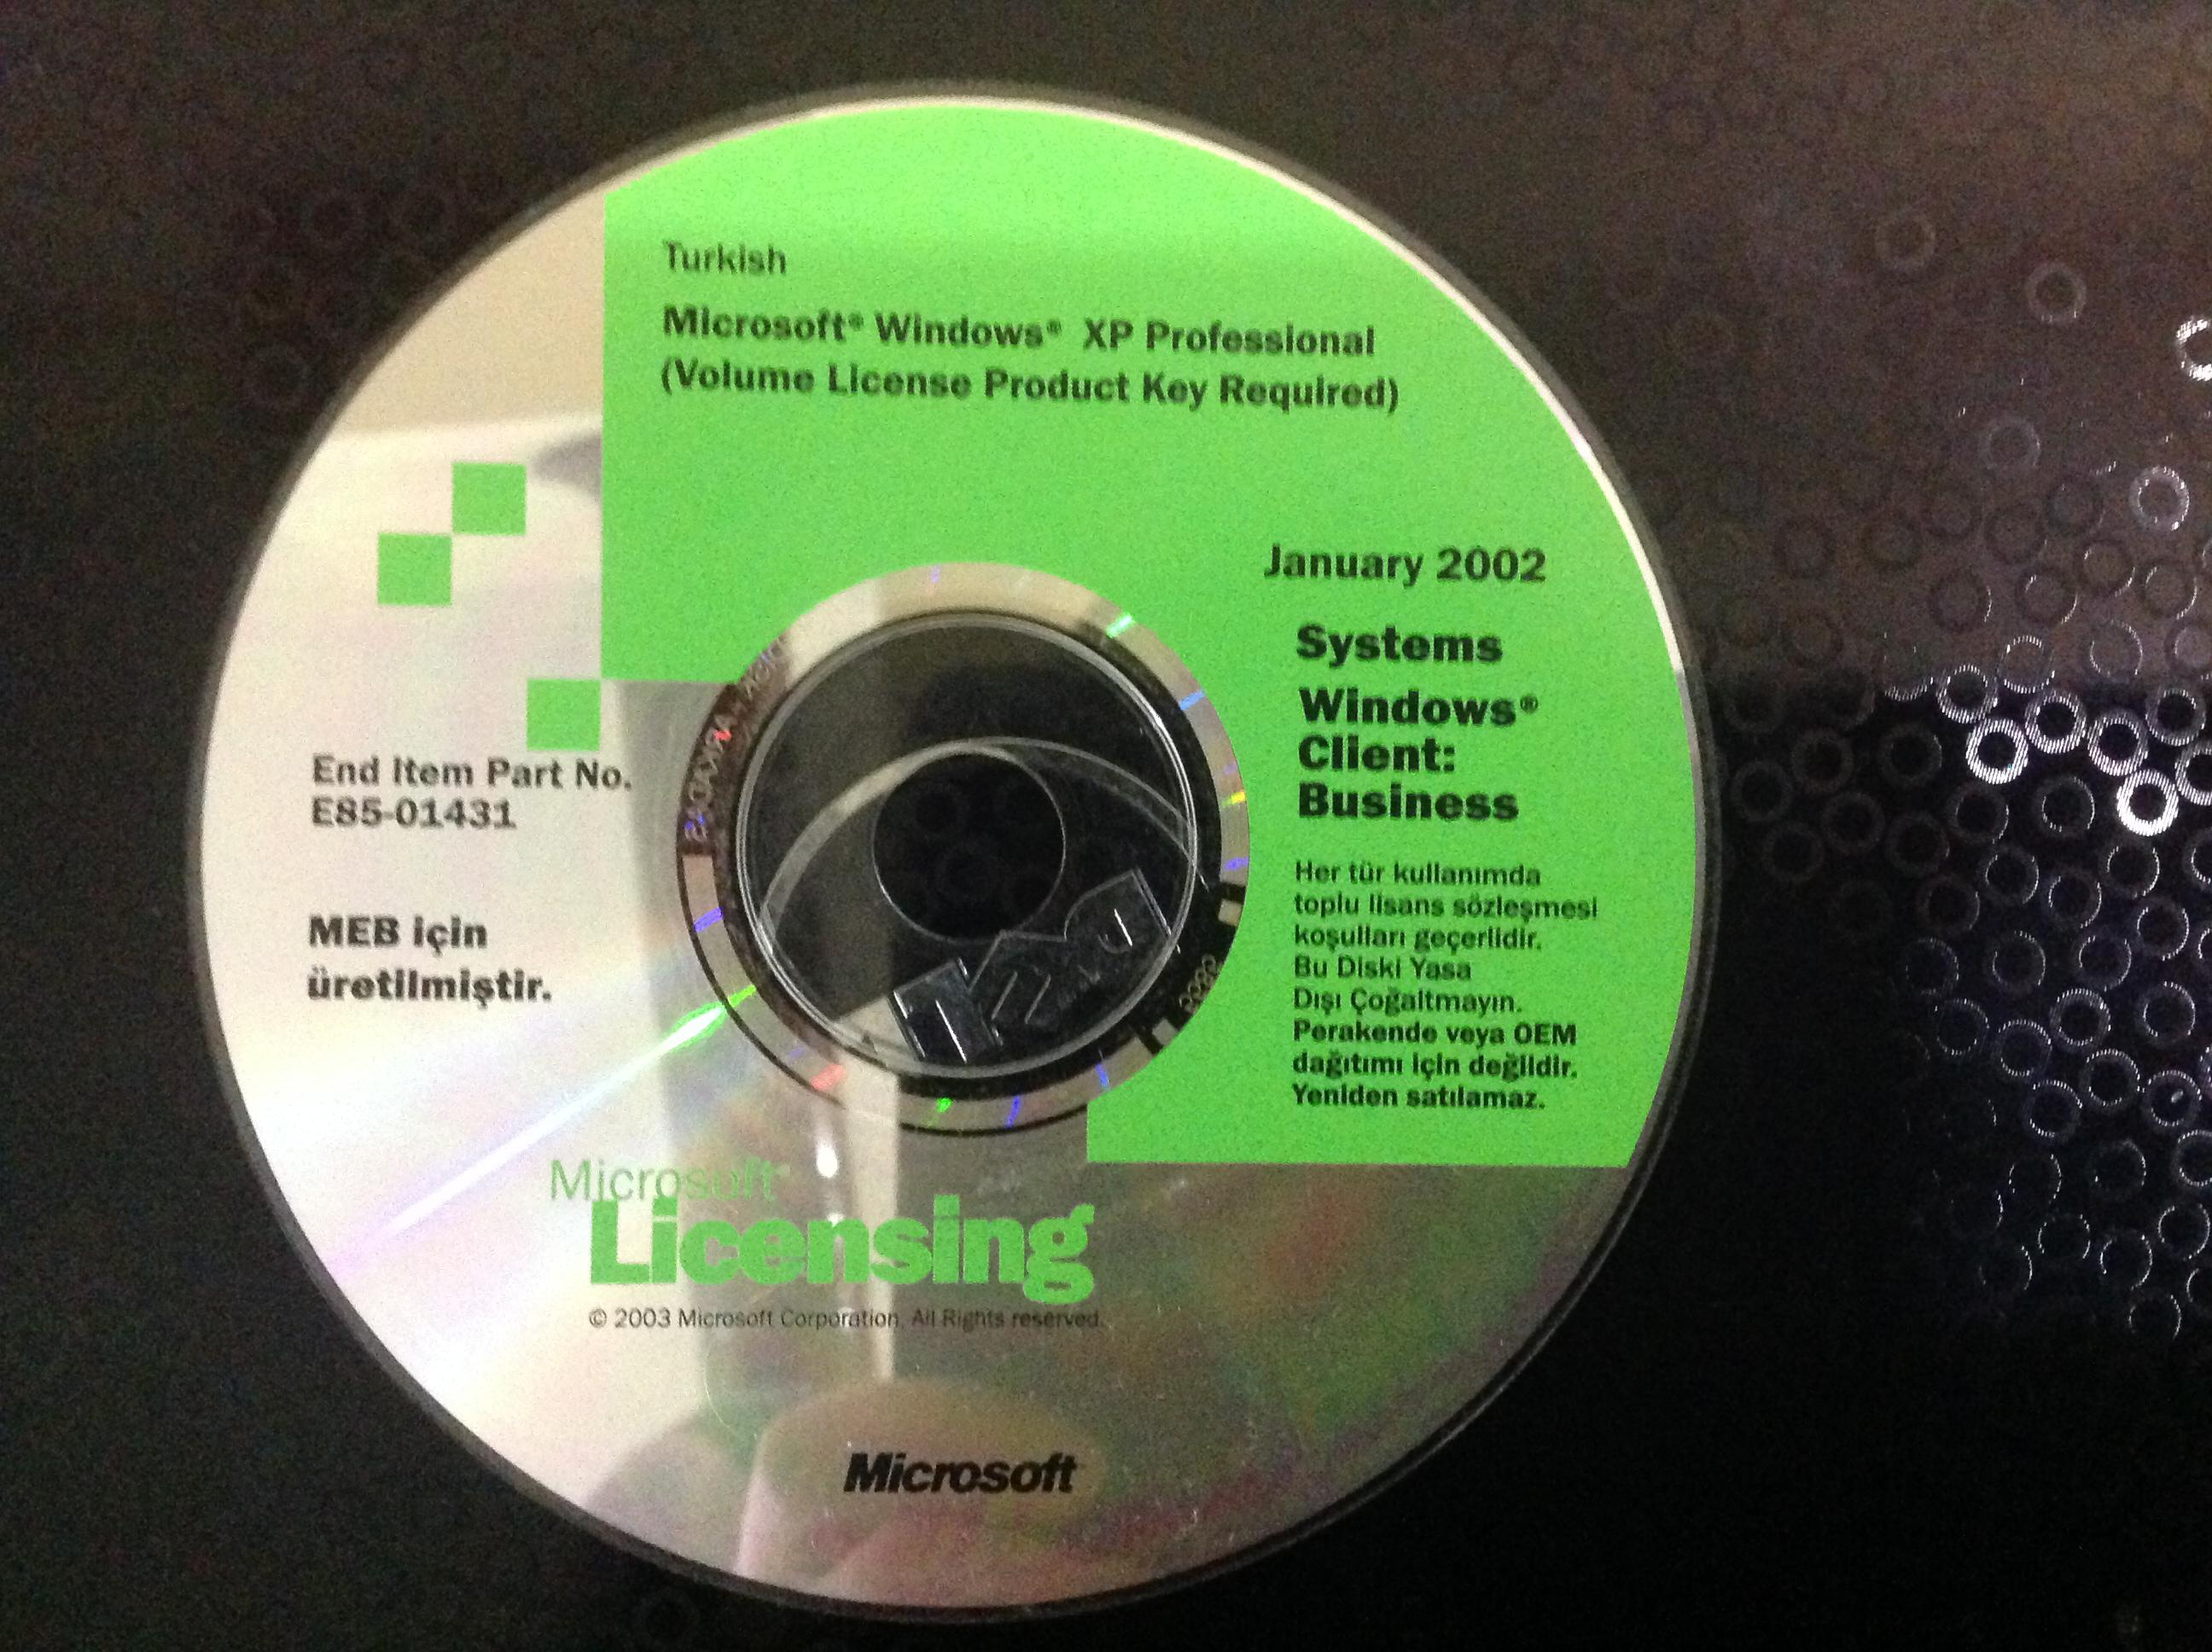 Windows xp volume license product key sp3 - ensetiti's diary